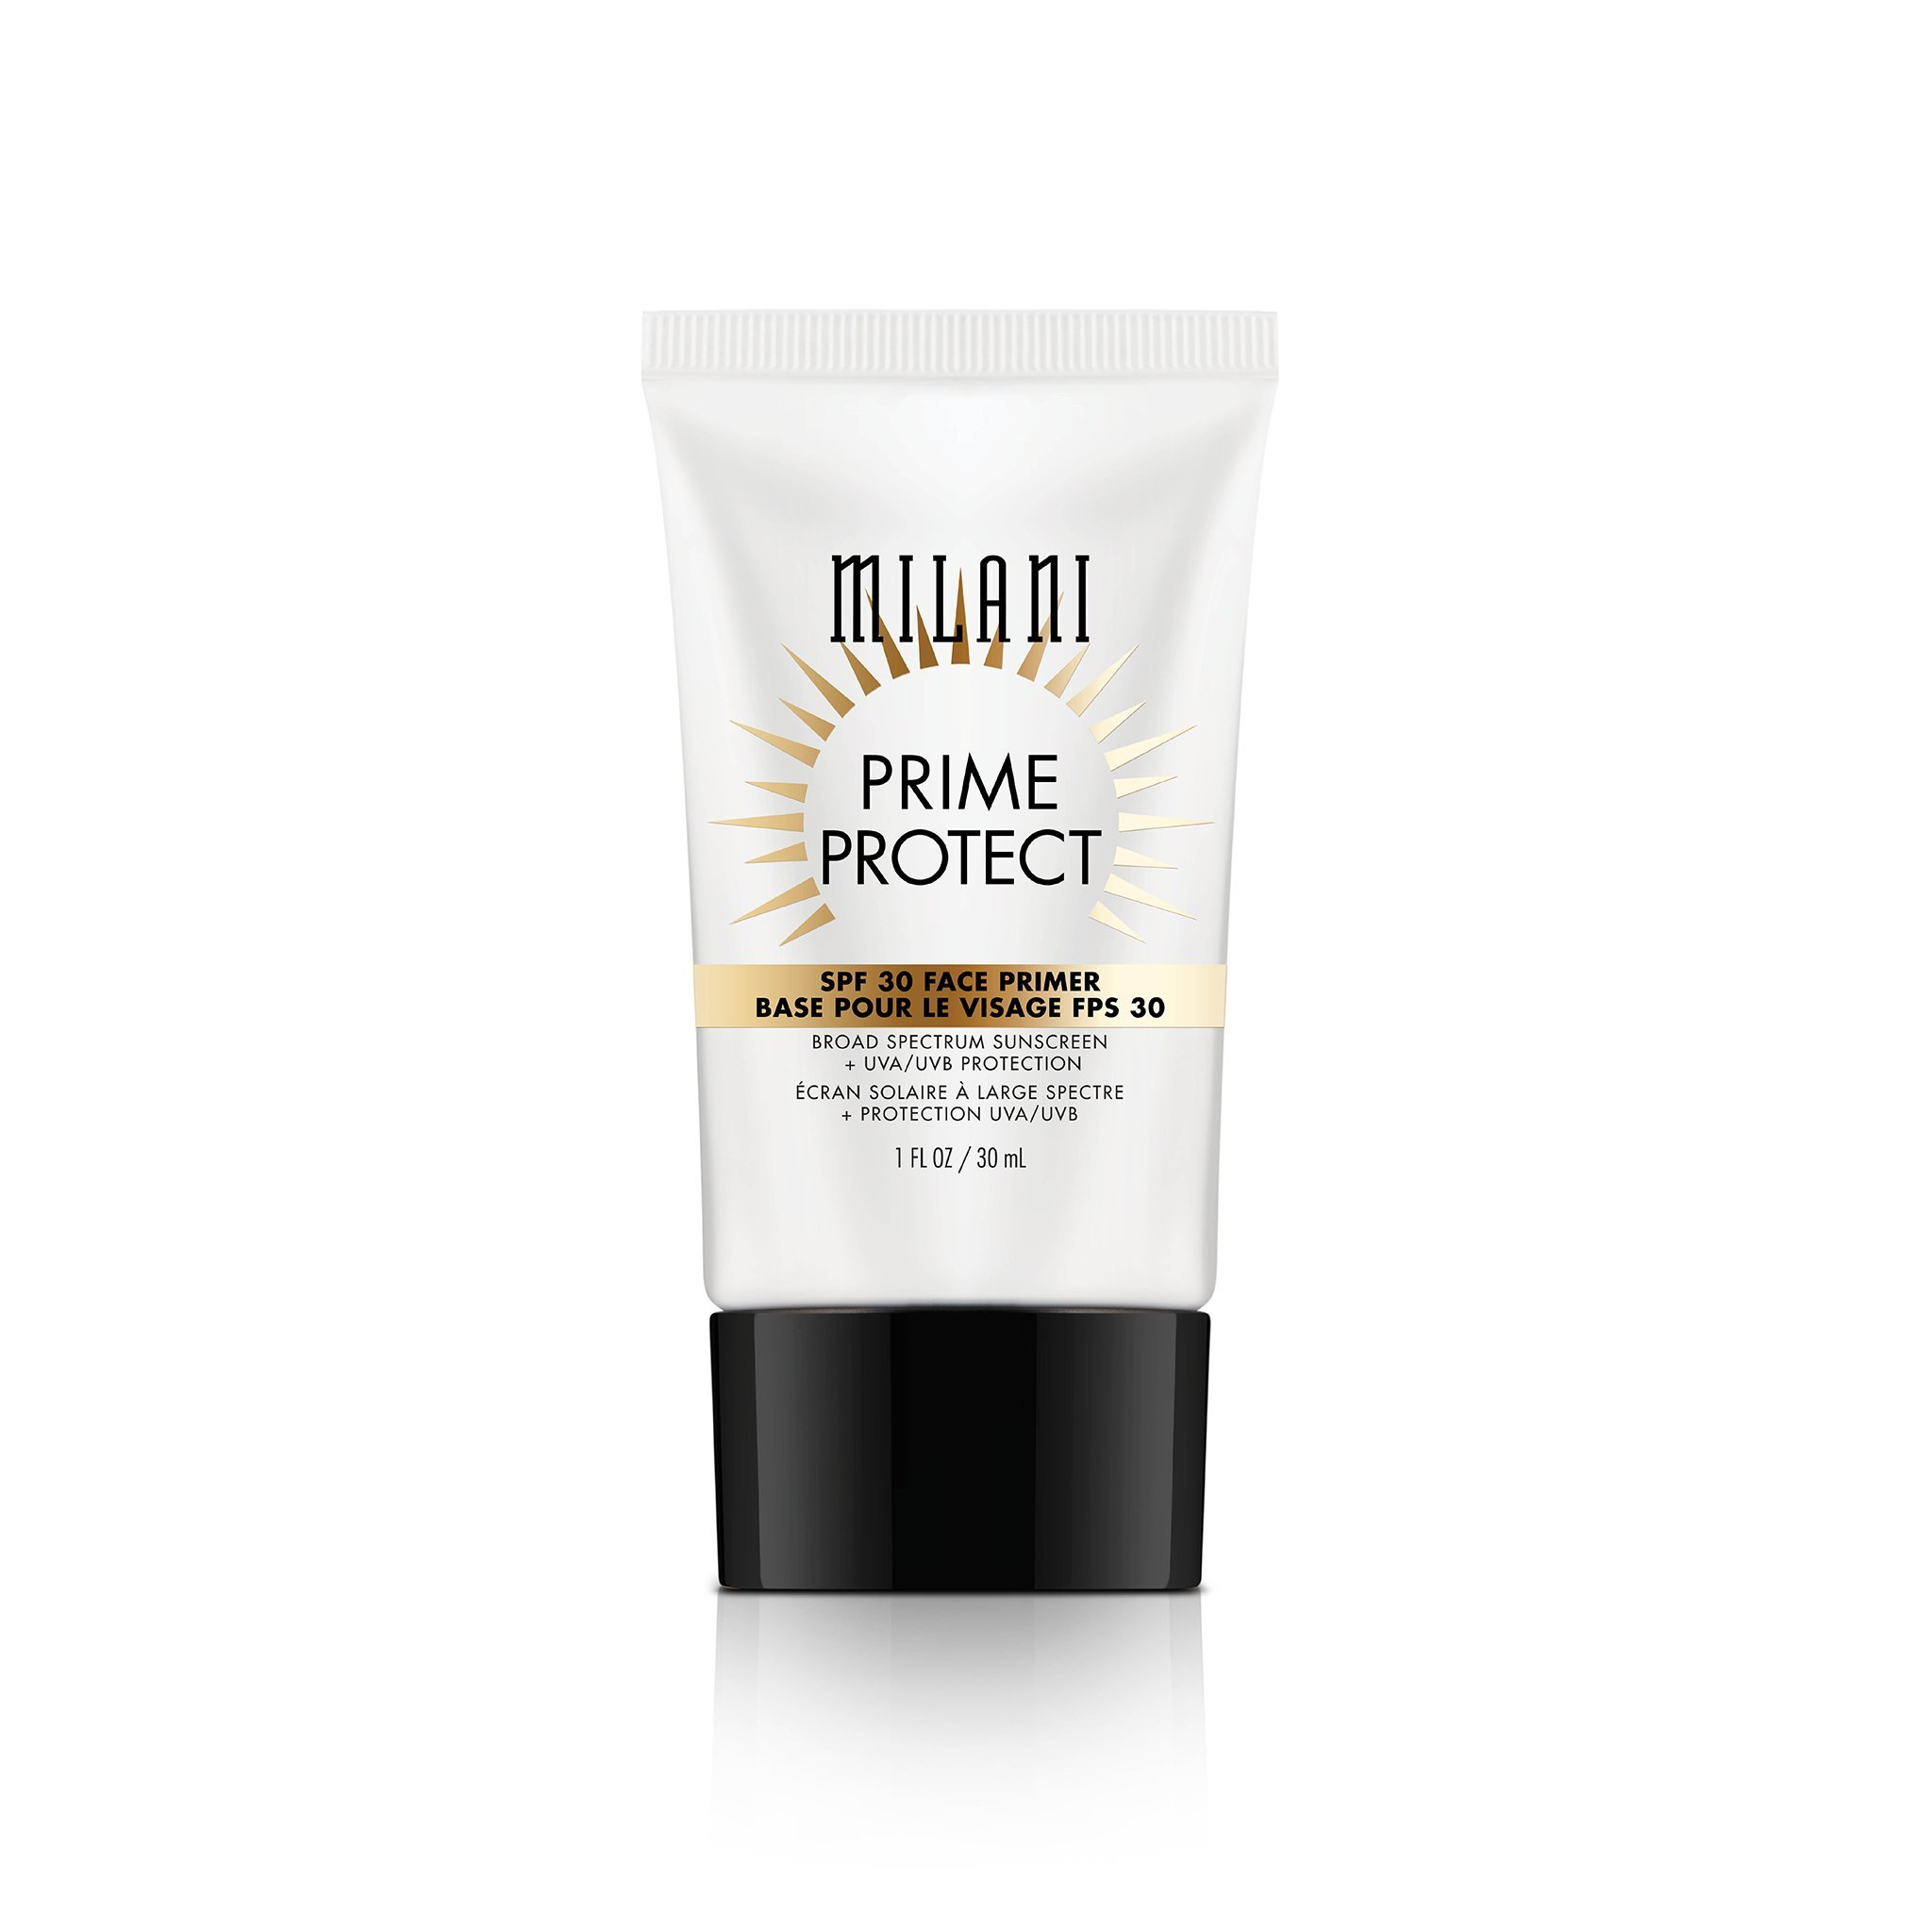 MILANI Праймер с защитой SPF 30 Prime Protect SPF 30 Face Primer